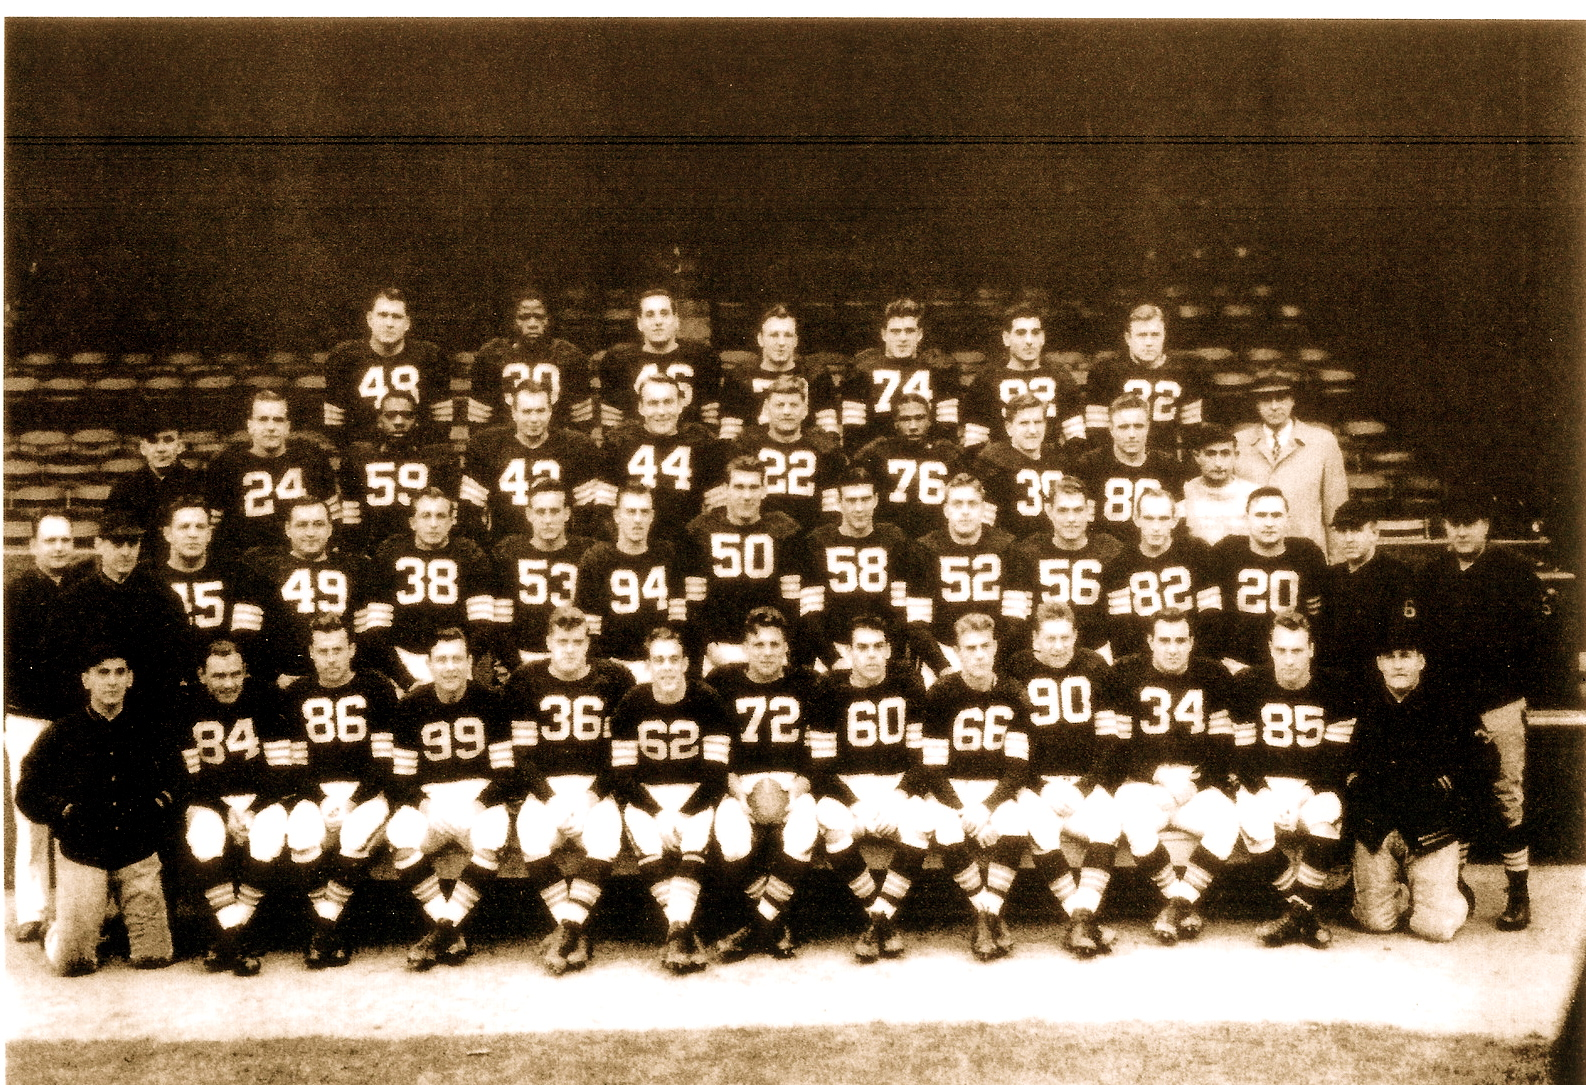 1948 AAFC Champions- Cleveland Browns